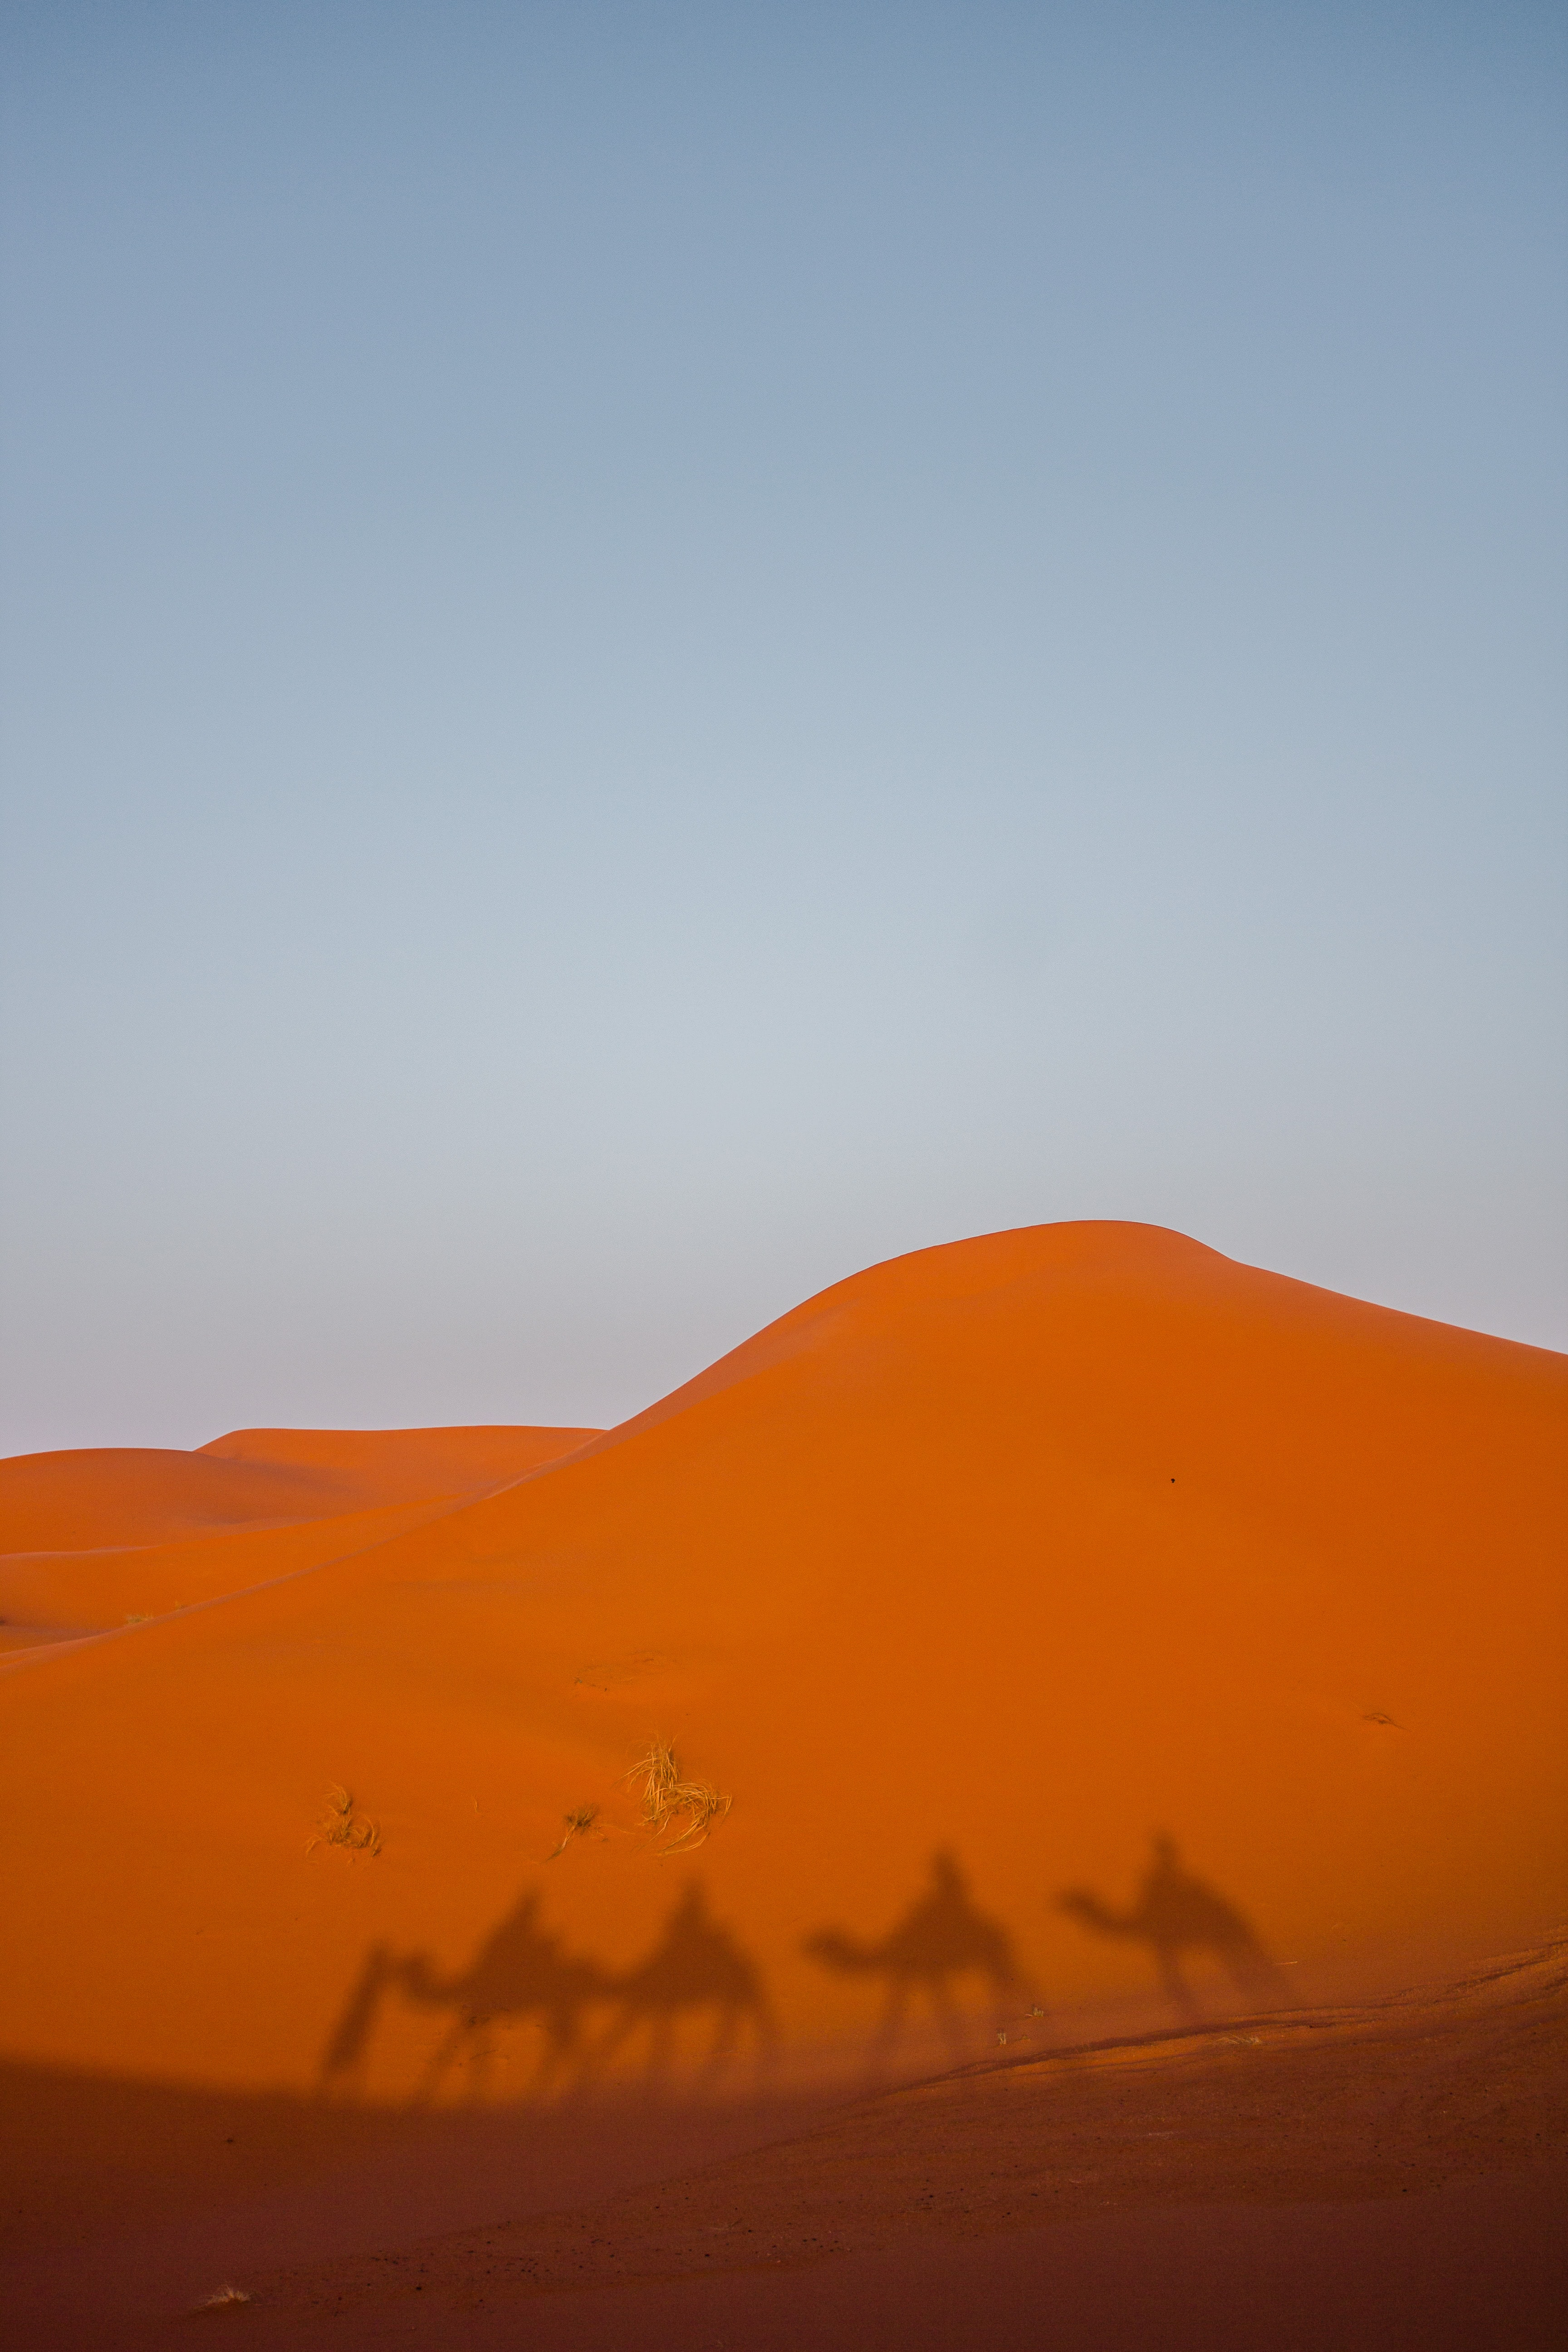 shadow of camel in desert under blue sky